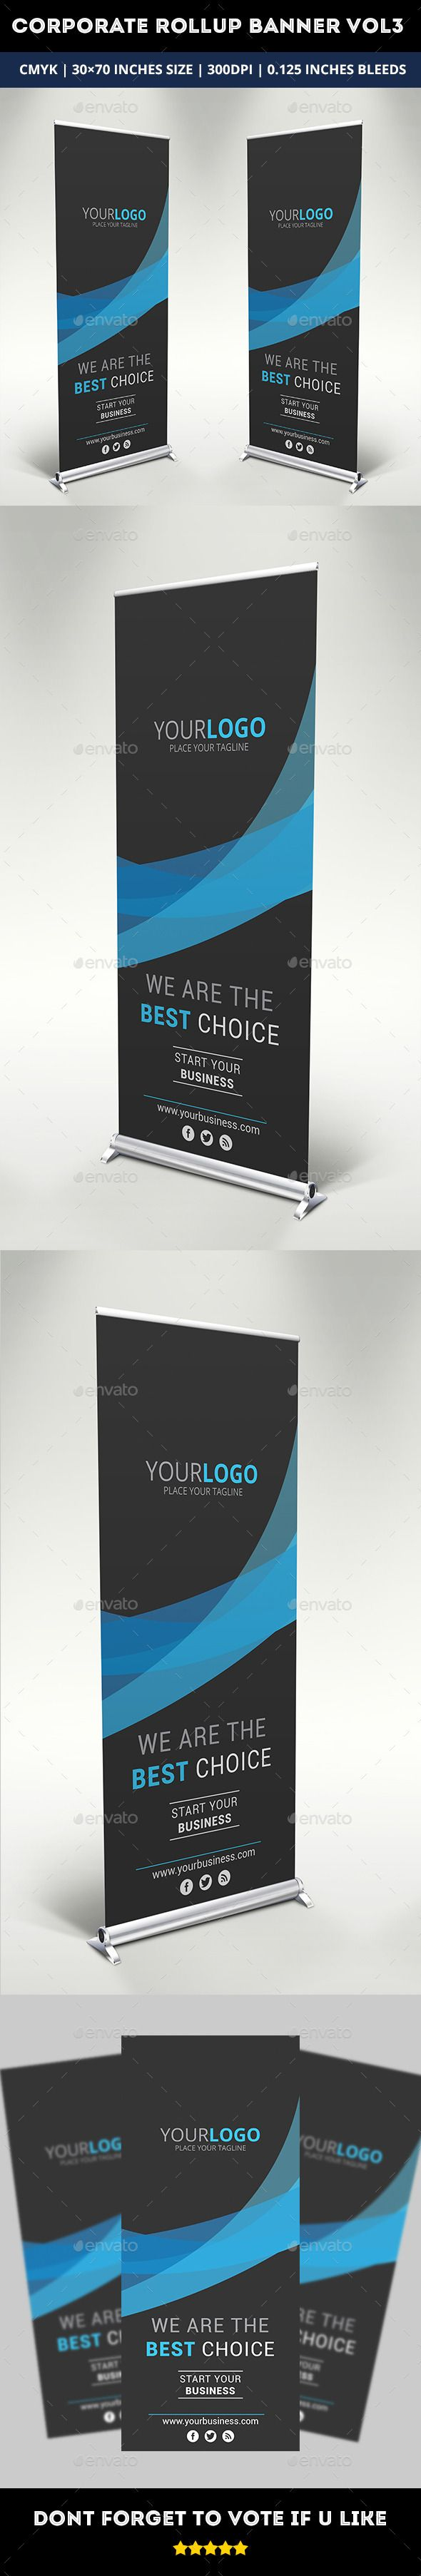 Corporate Rollup Banner Vol 3 — Vector EPS #rollup banner #standy • Availabl...